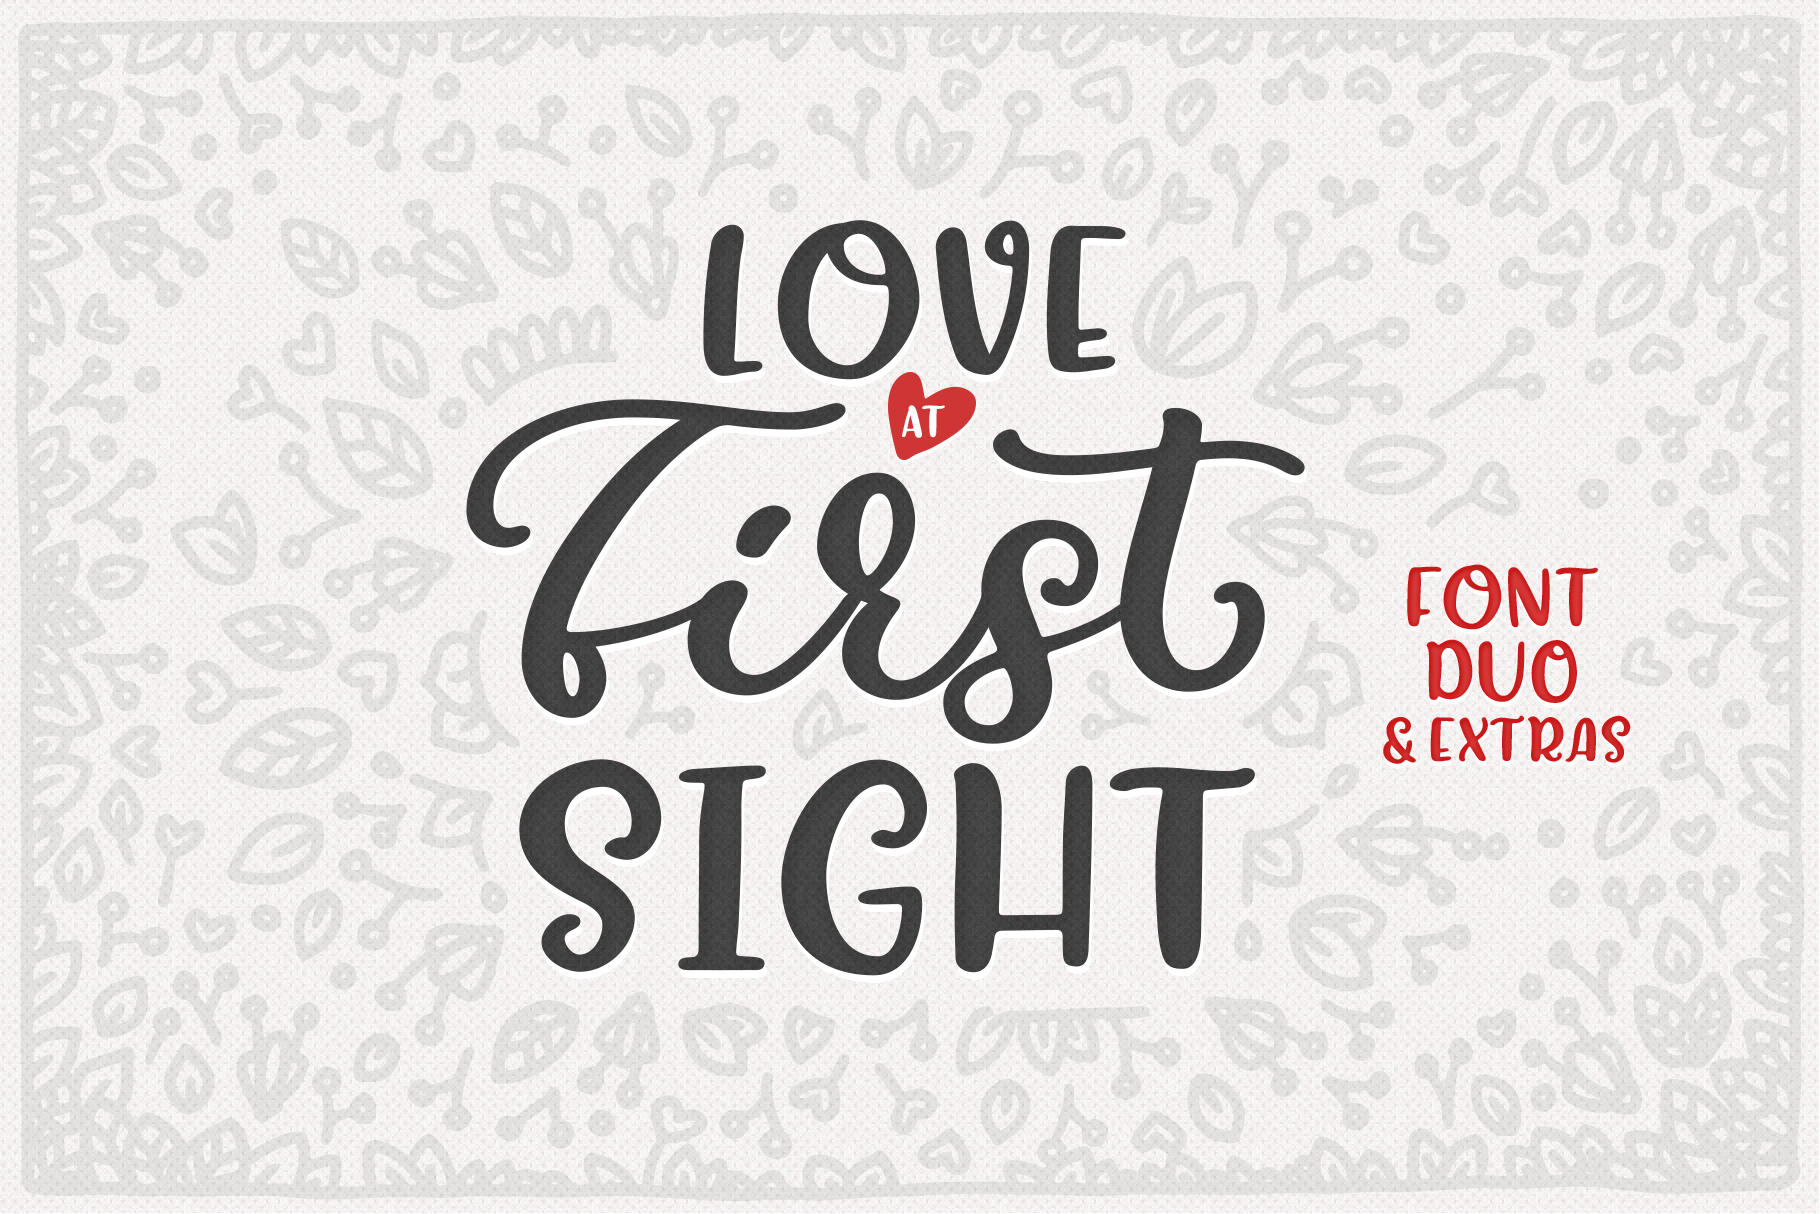 Love At First Sight Font Duo & Extras example image 1